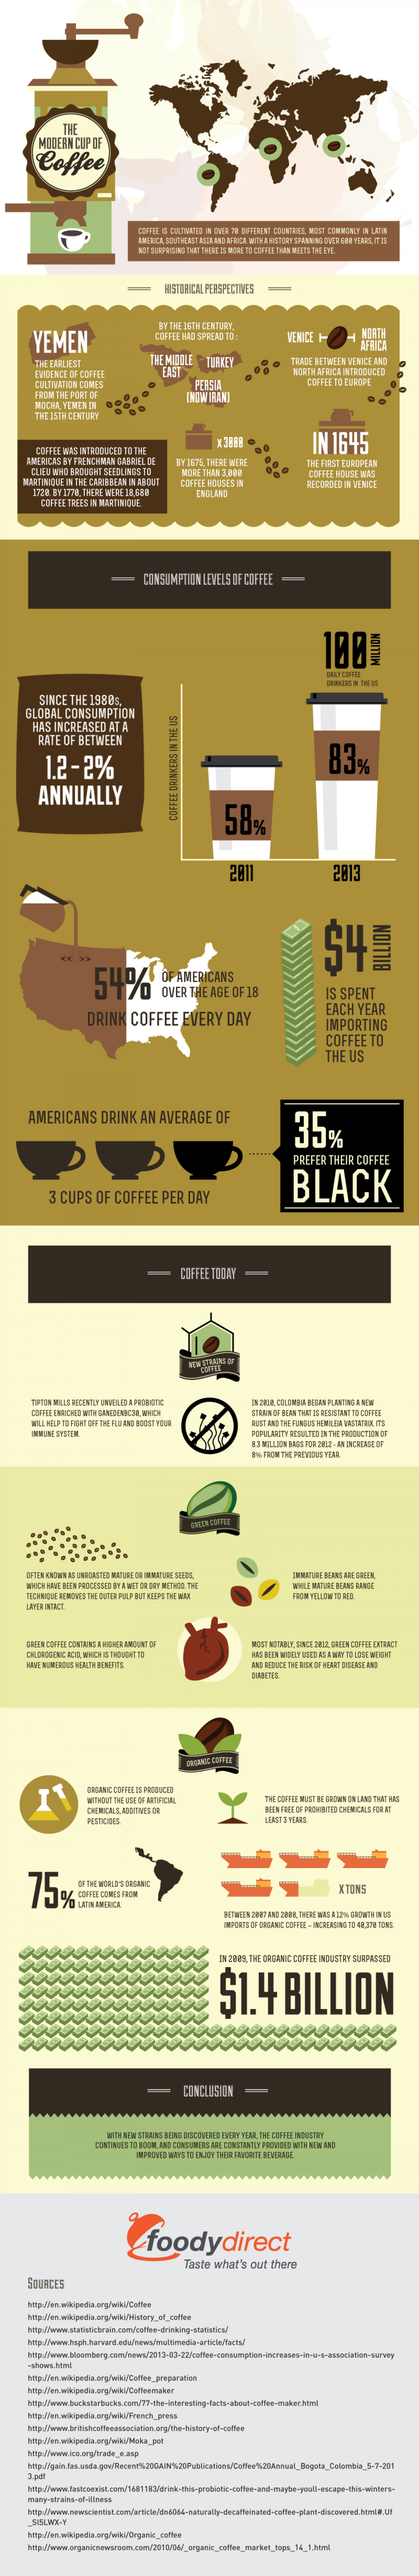 The Modern Cup of Coffee Infographic